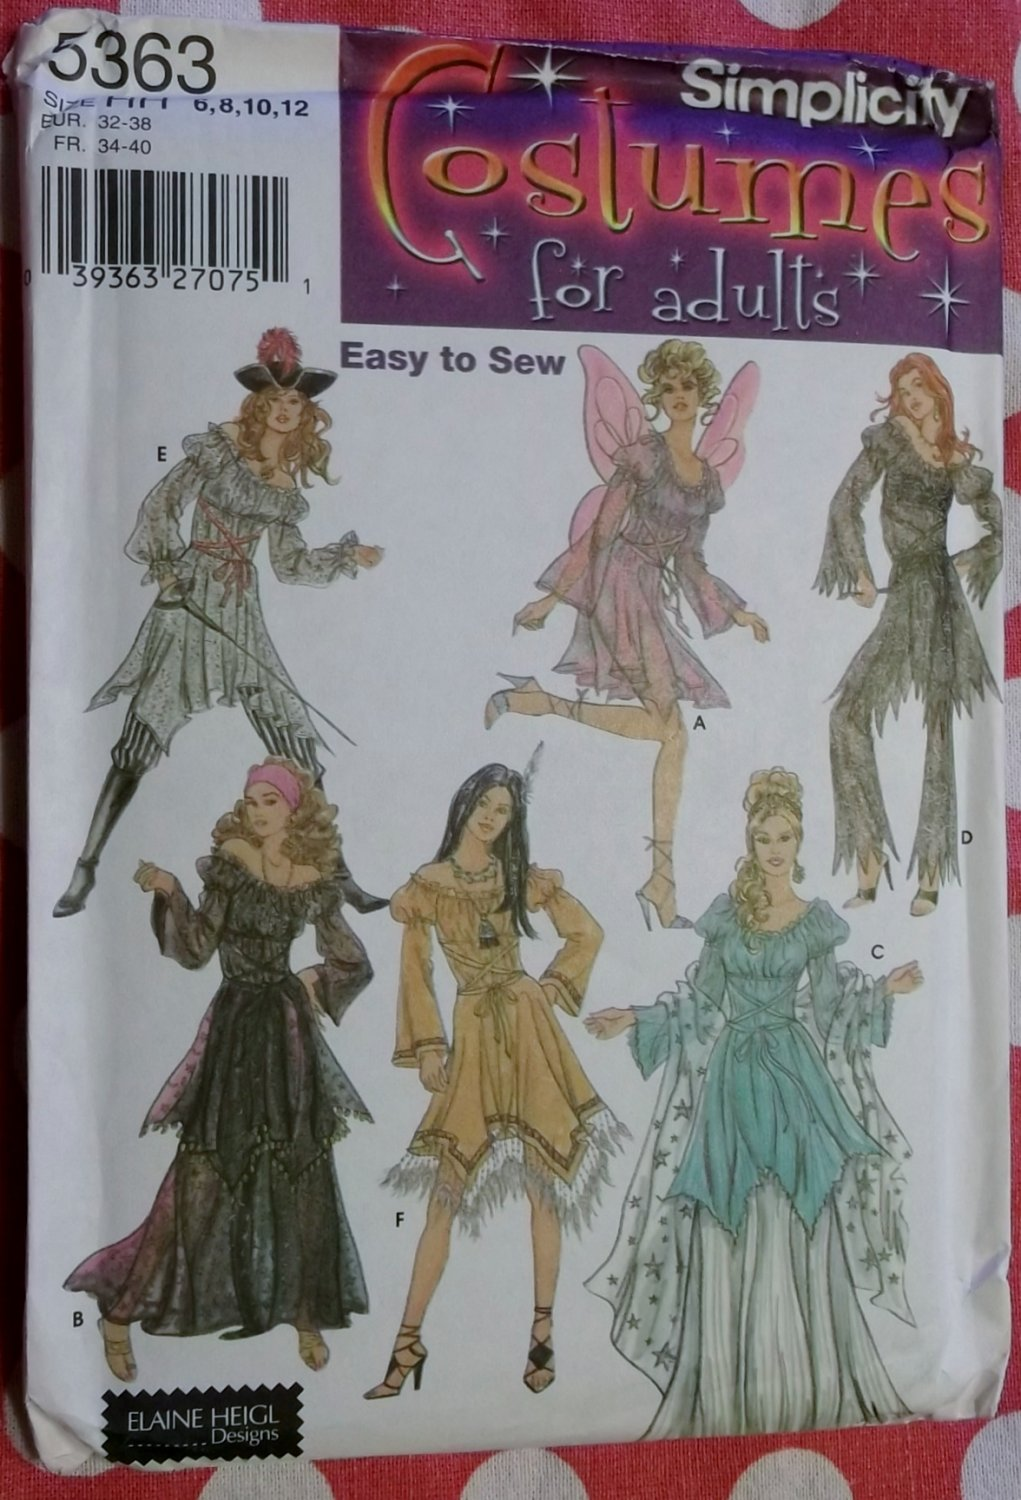 Costumes Fairy Indian Princess Pirate Lady Gypsy Simplicity 5363 Pattern, Sz 8 To 12, Uncut